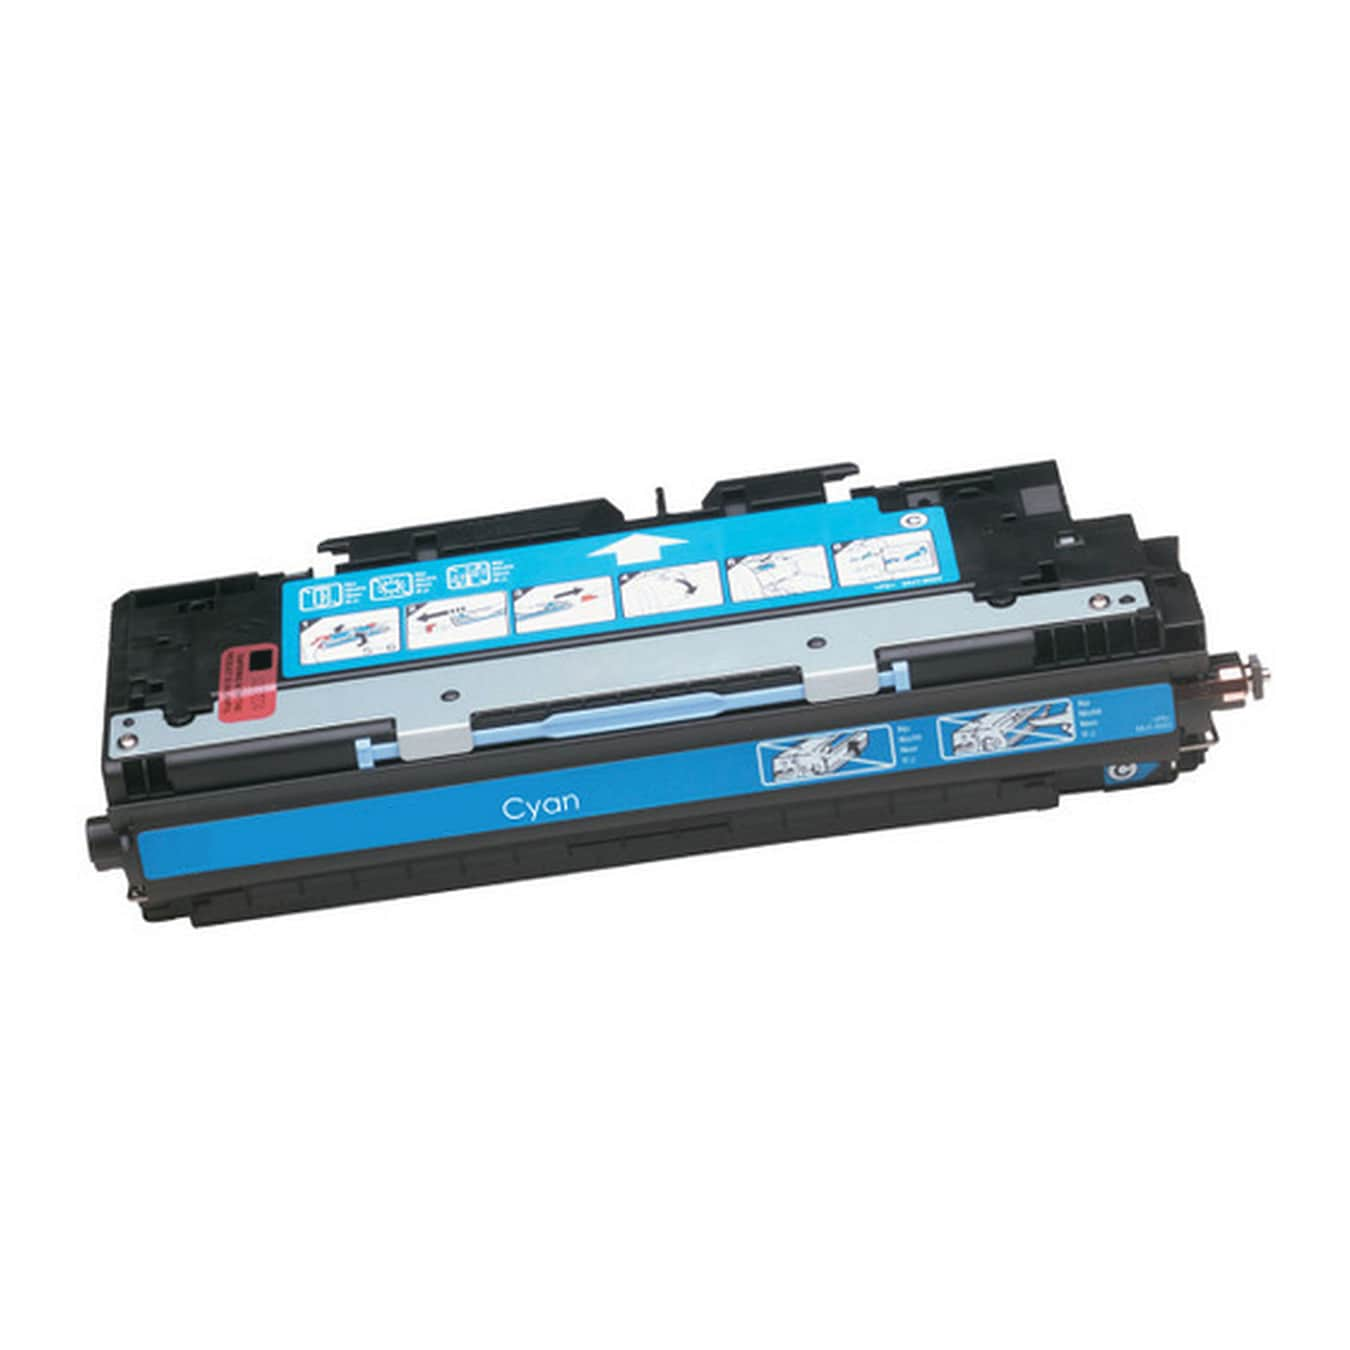 Q2681A Toner Cartridge - HP Remanufactured (Cyan)